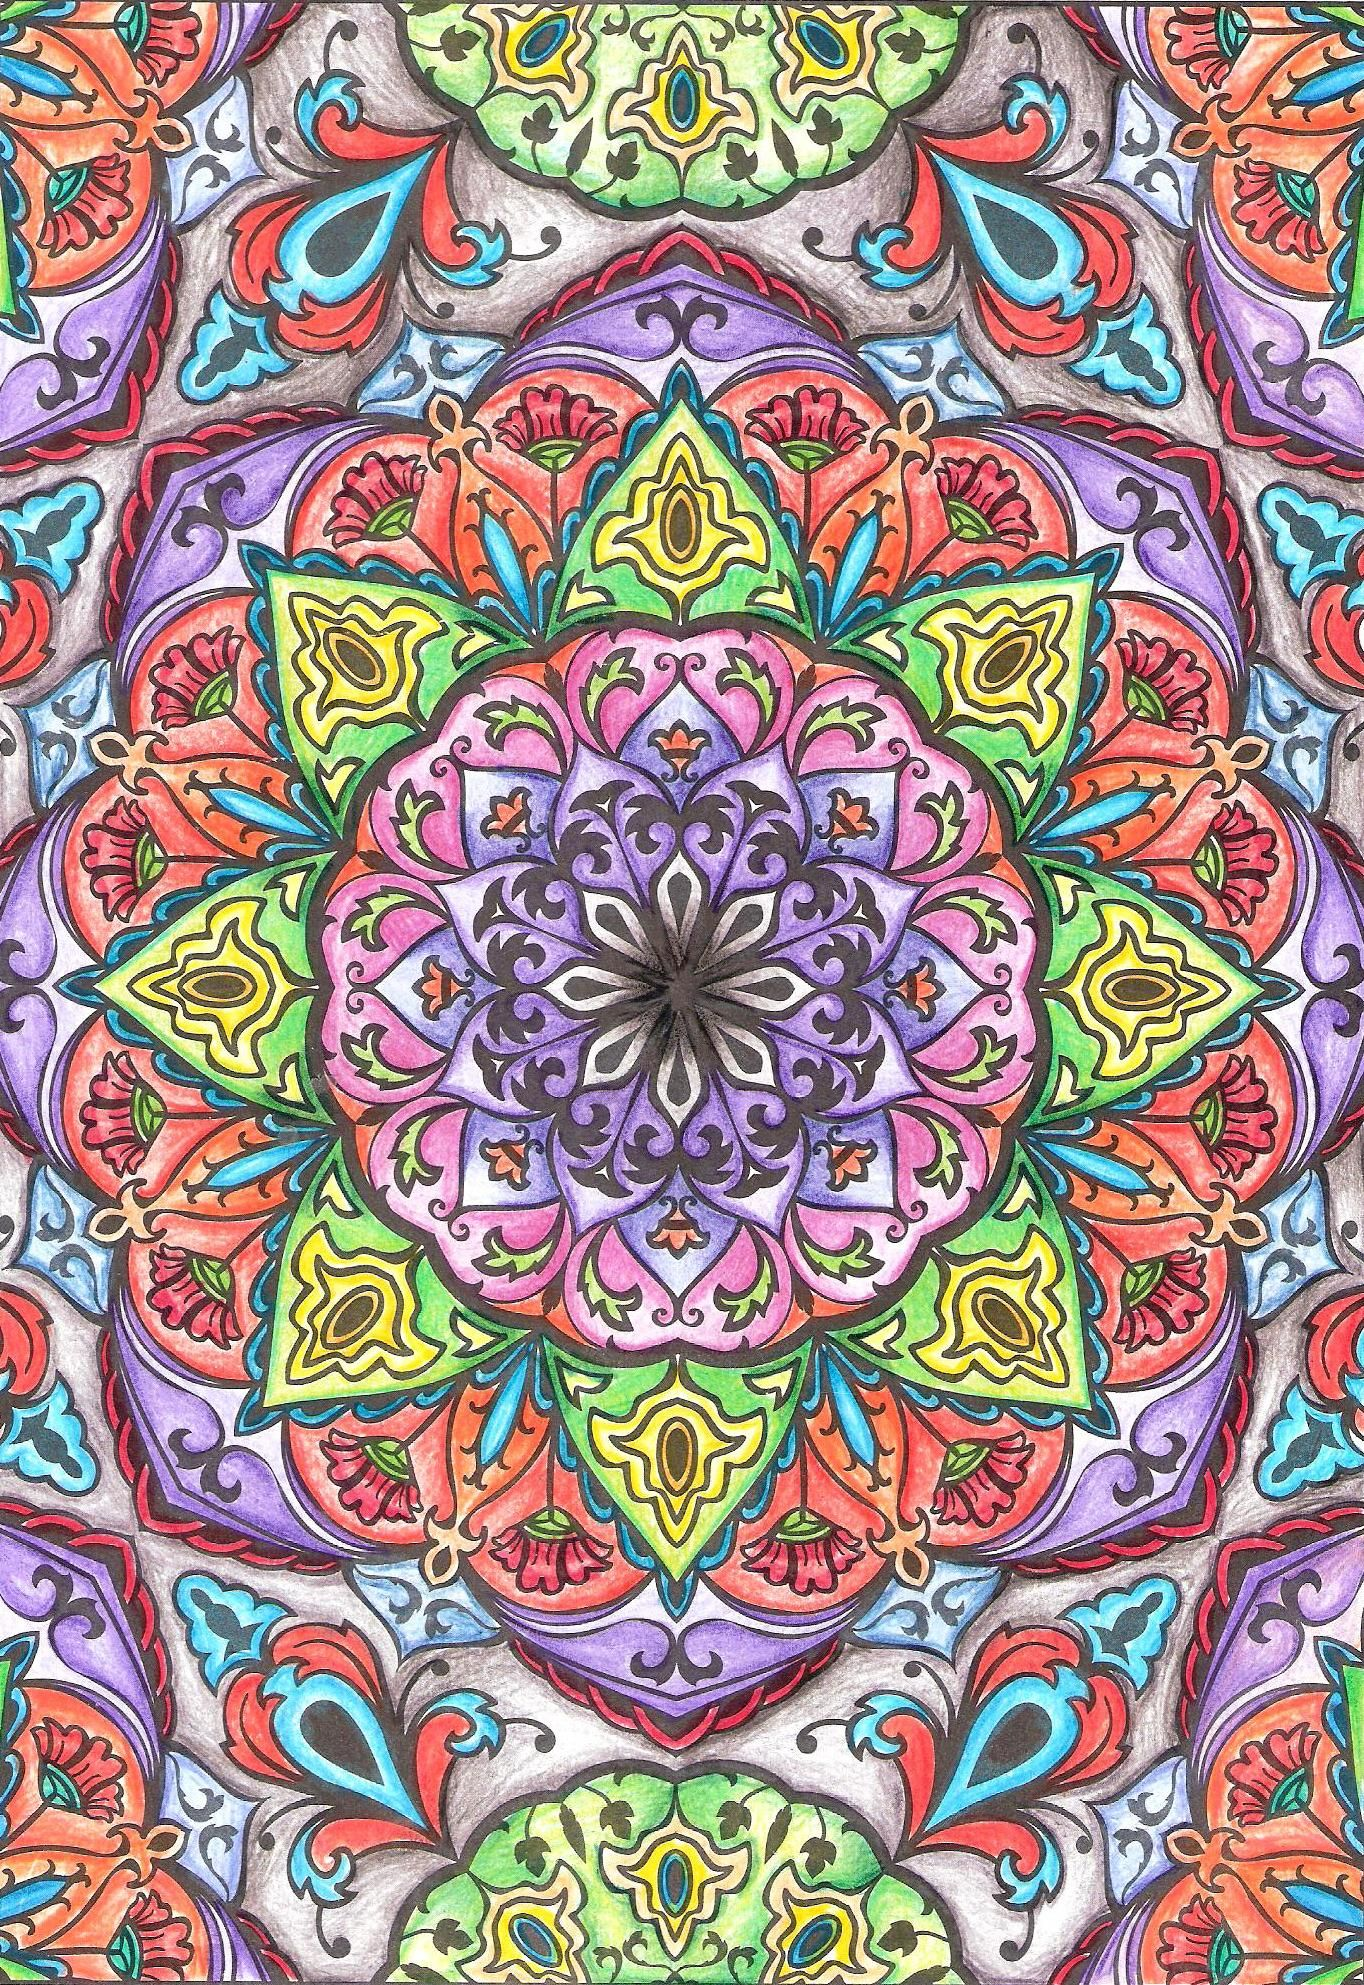 From Coloring Patterns For Adults Published By Bendon Mandala Coloring Pages Mandala Coloring Mermaid Coloring Book